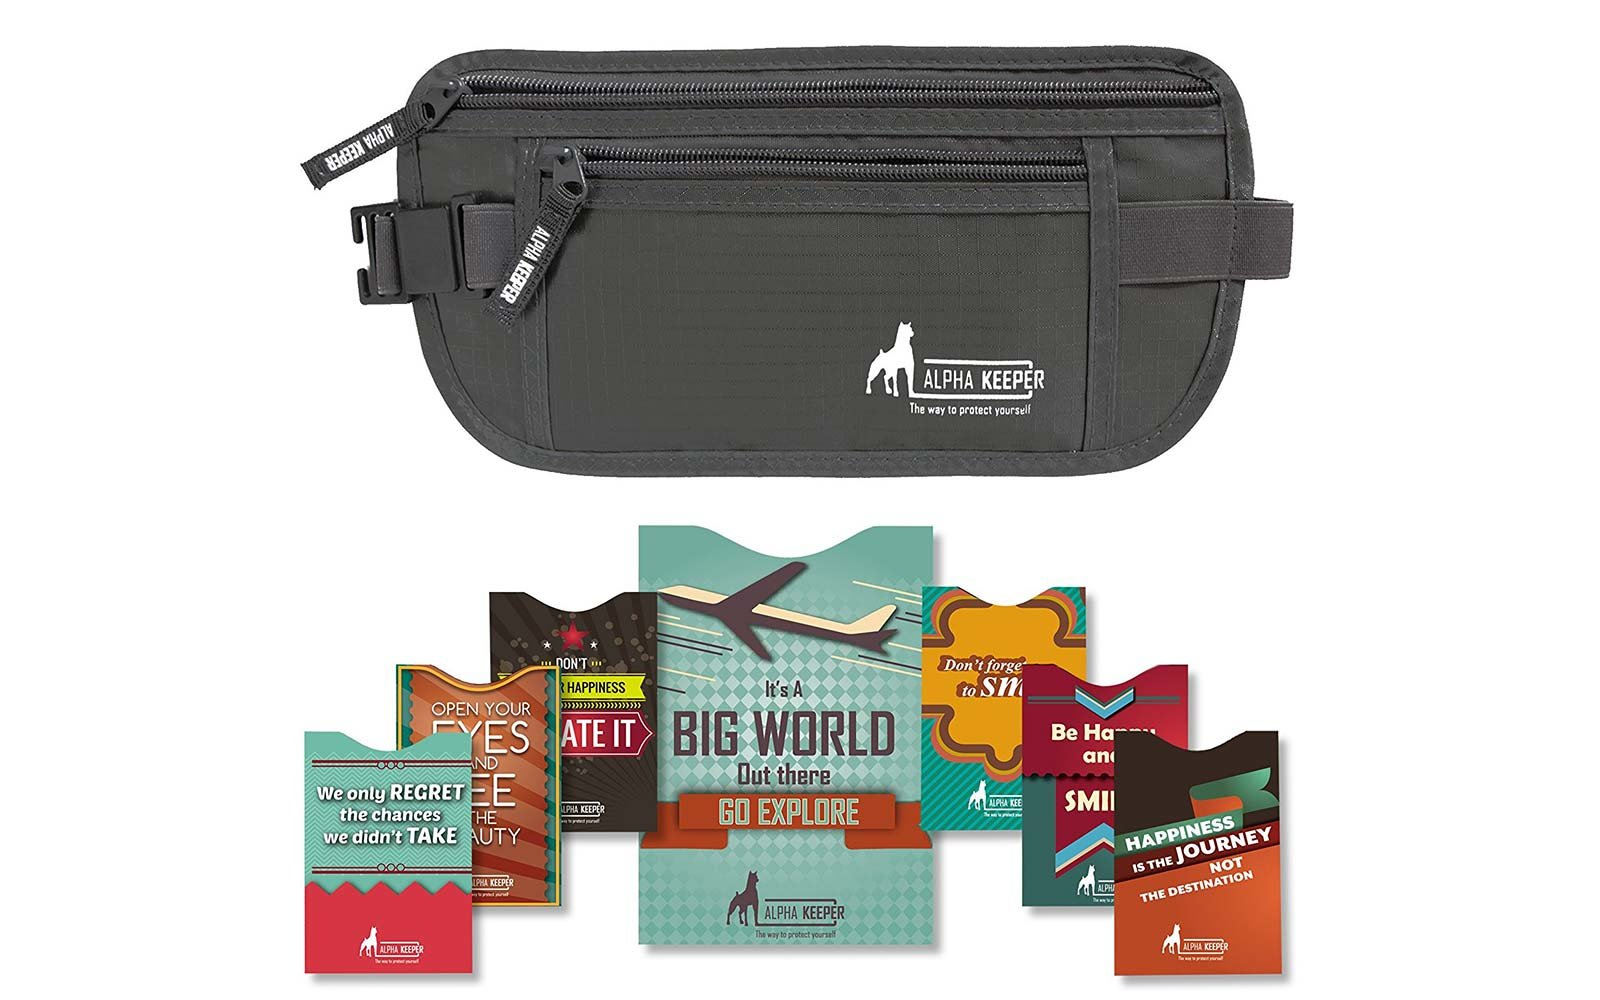 Long Term Travel Packing Alpha Keeper fanny pack bag